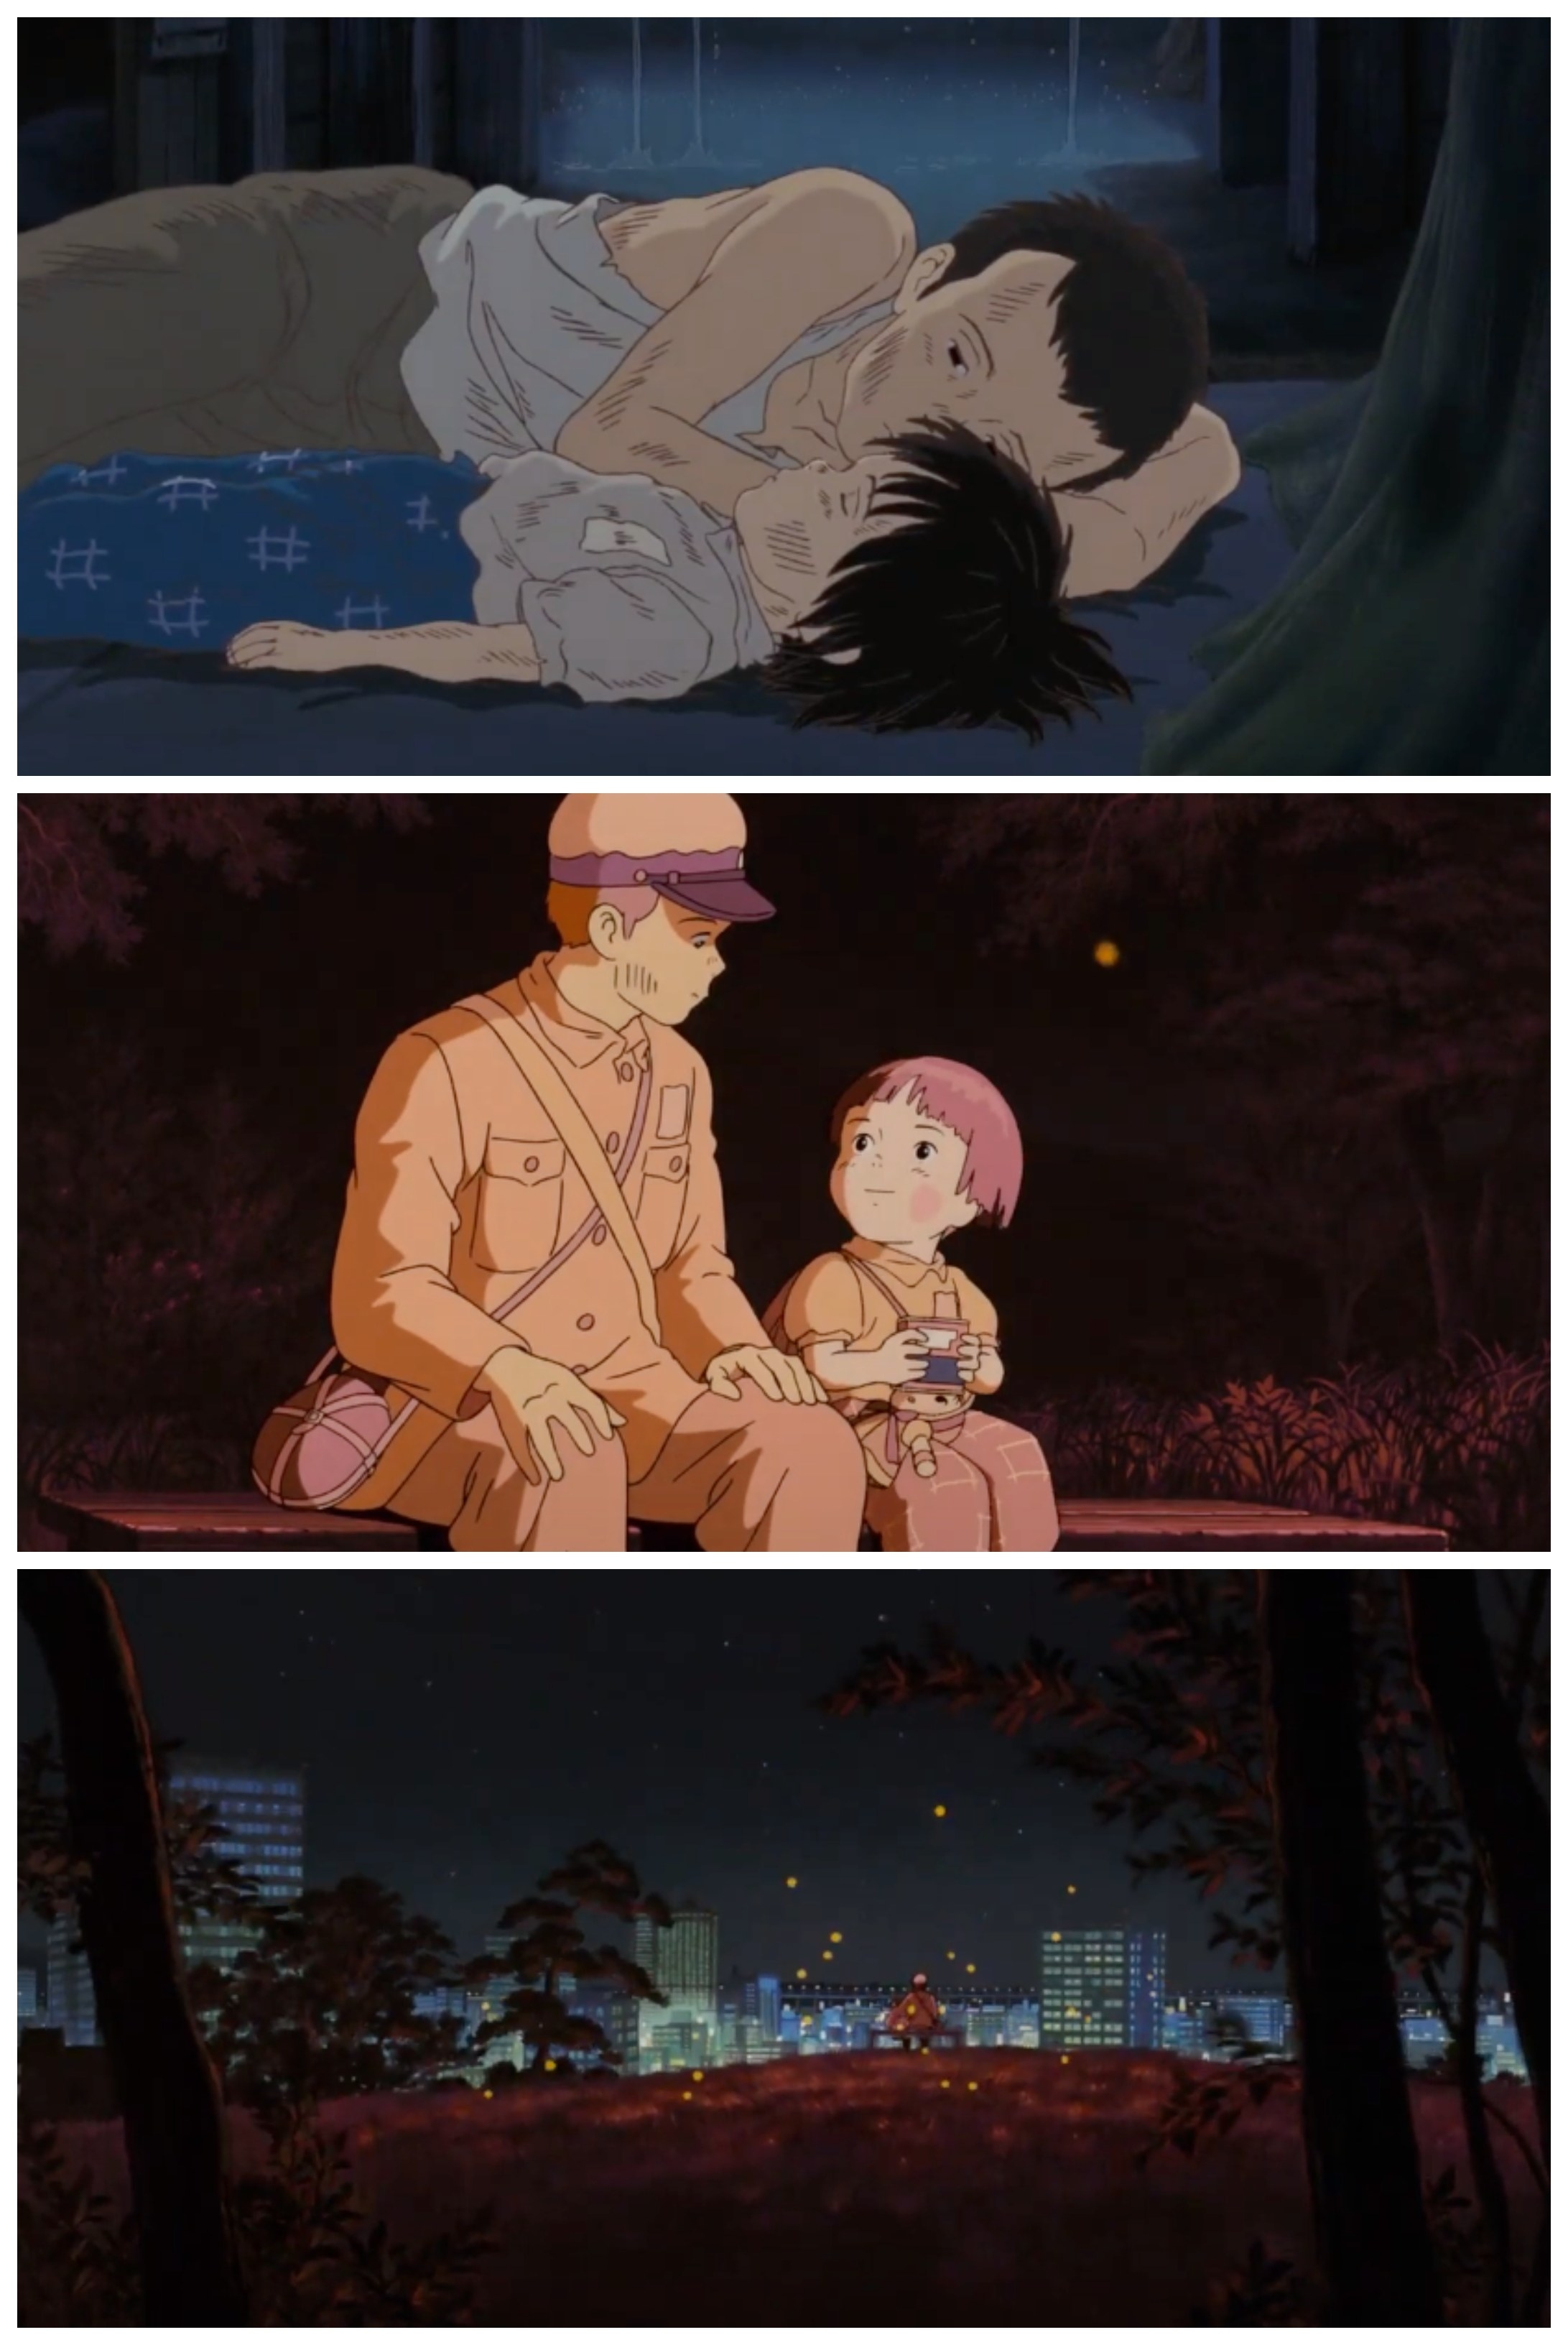 A collage showing Seita and Setsuko when they were alive and after they've reunited as spirits, surrounded by fireflies